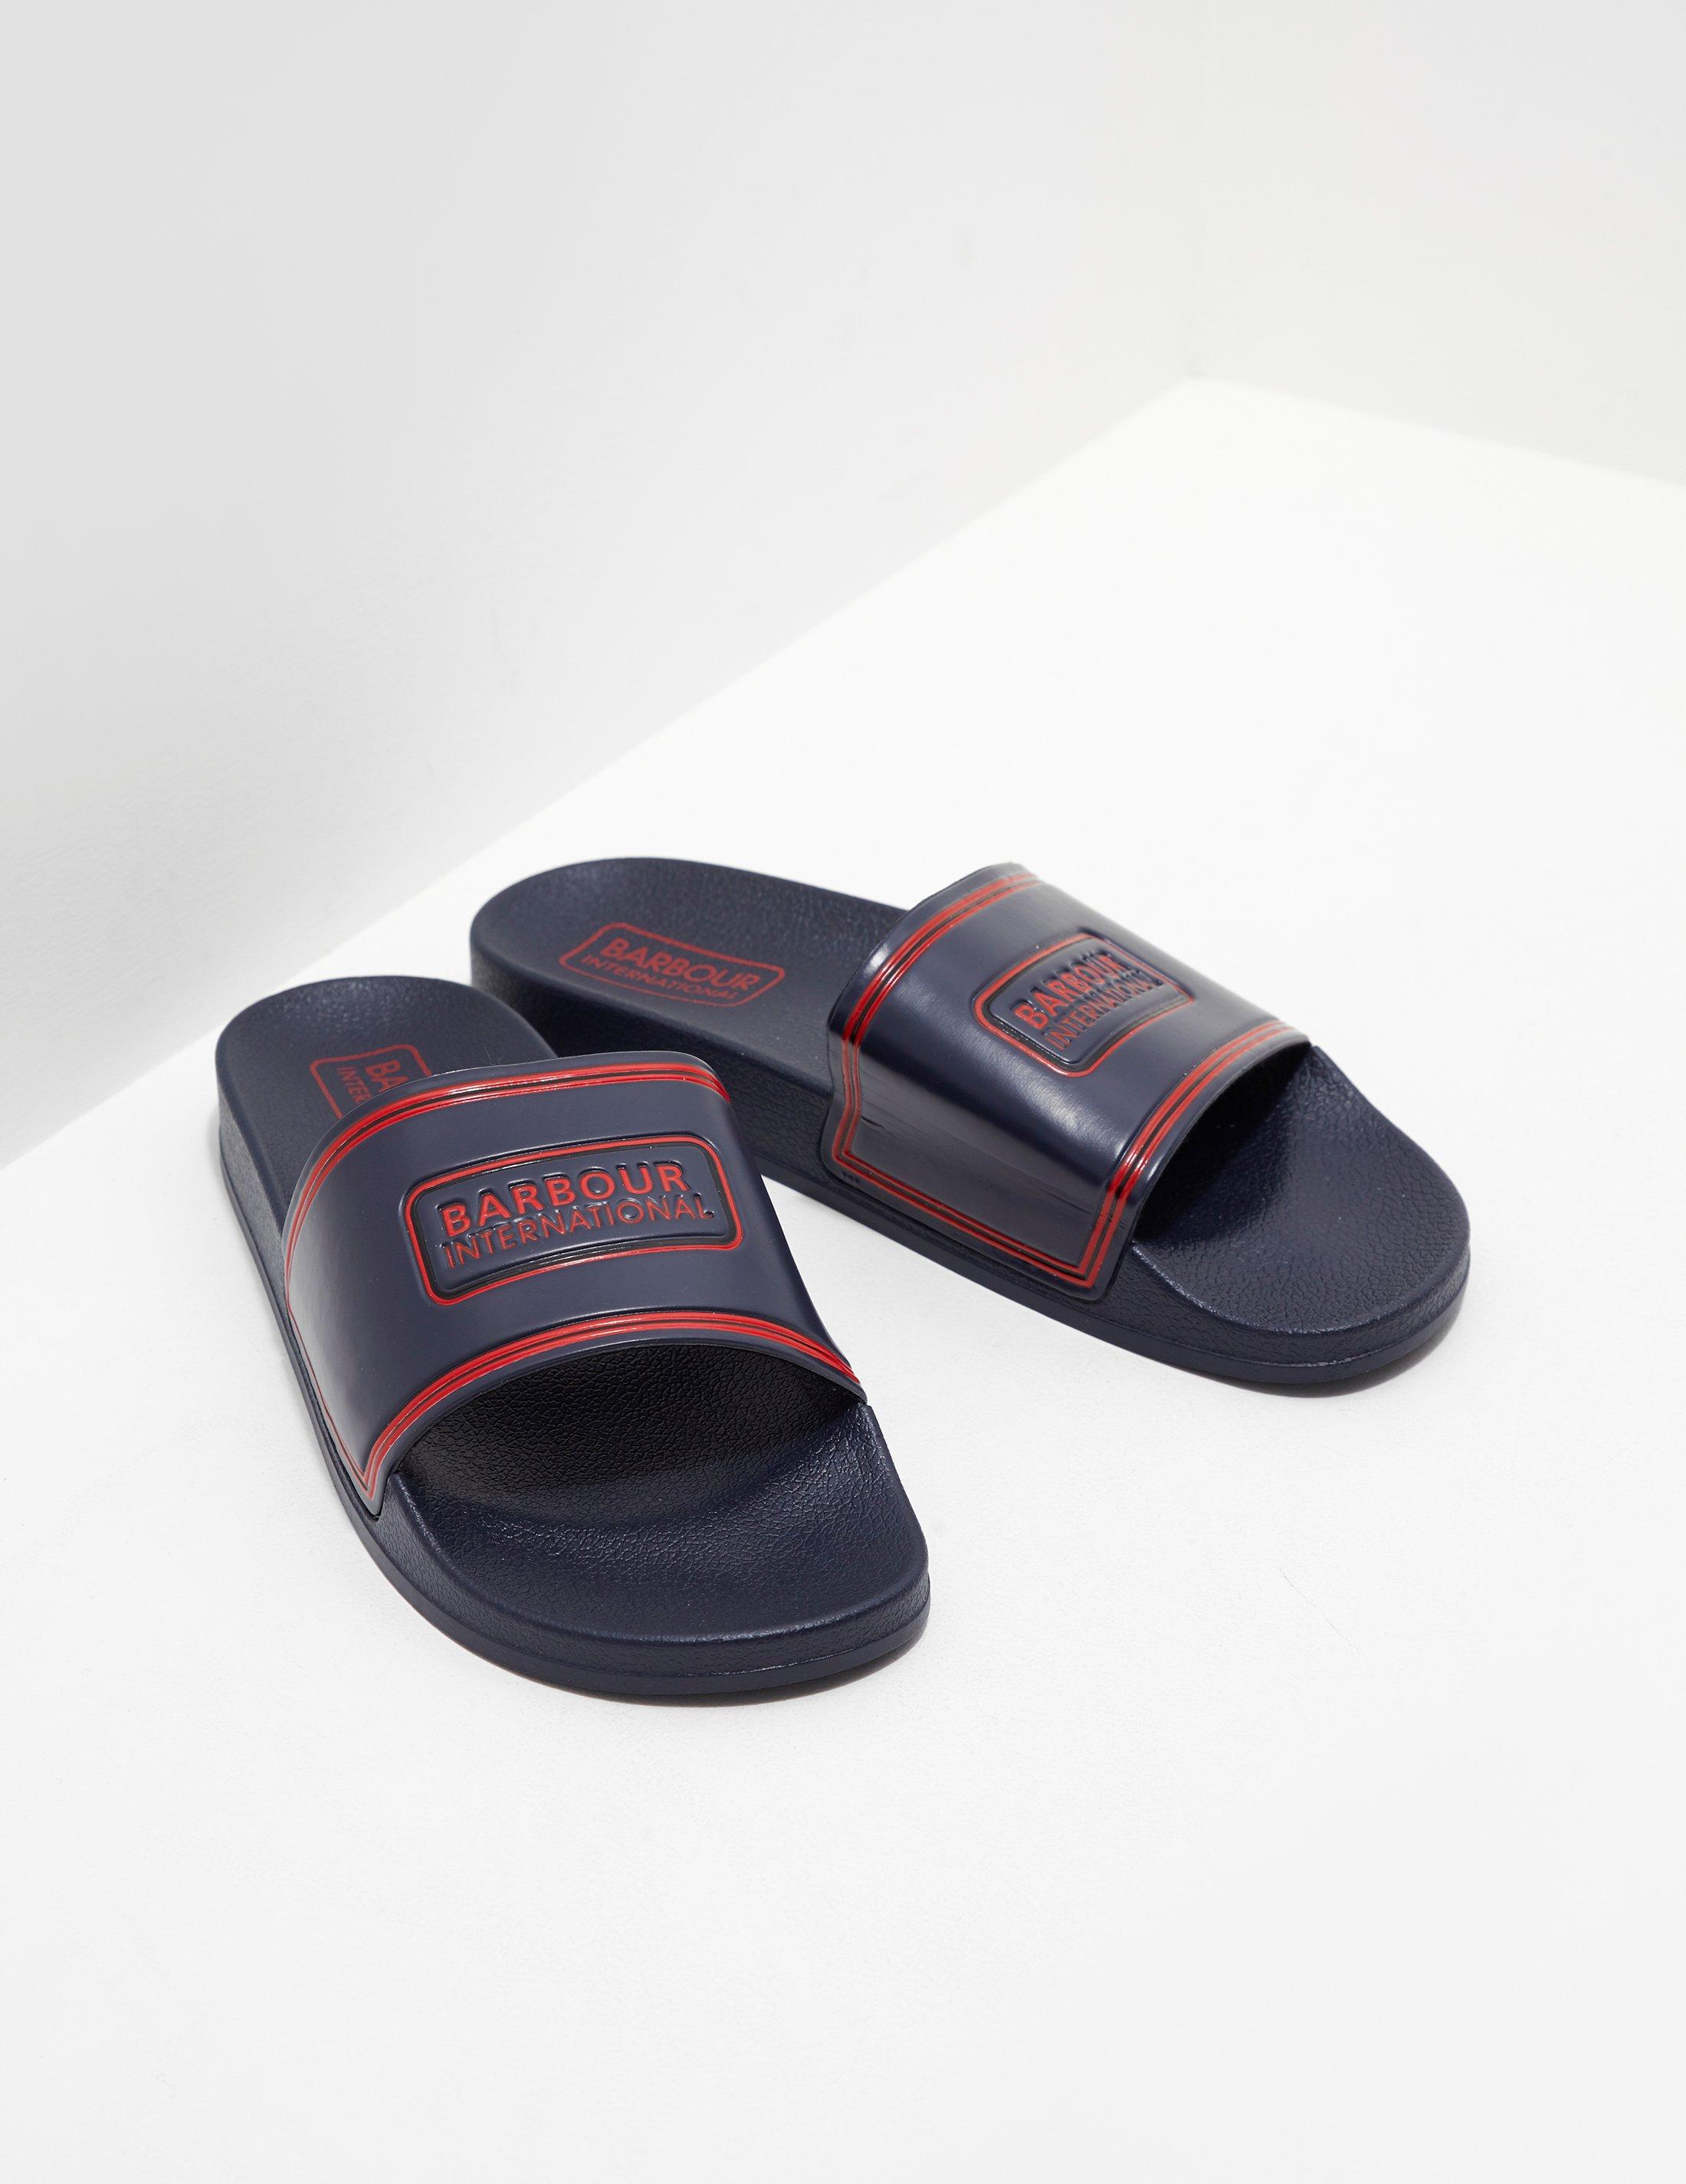 6970b2524469 Barbour Mens International Logo Slides Navy navy in Blue for Men - Lyst